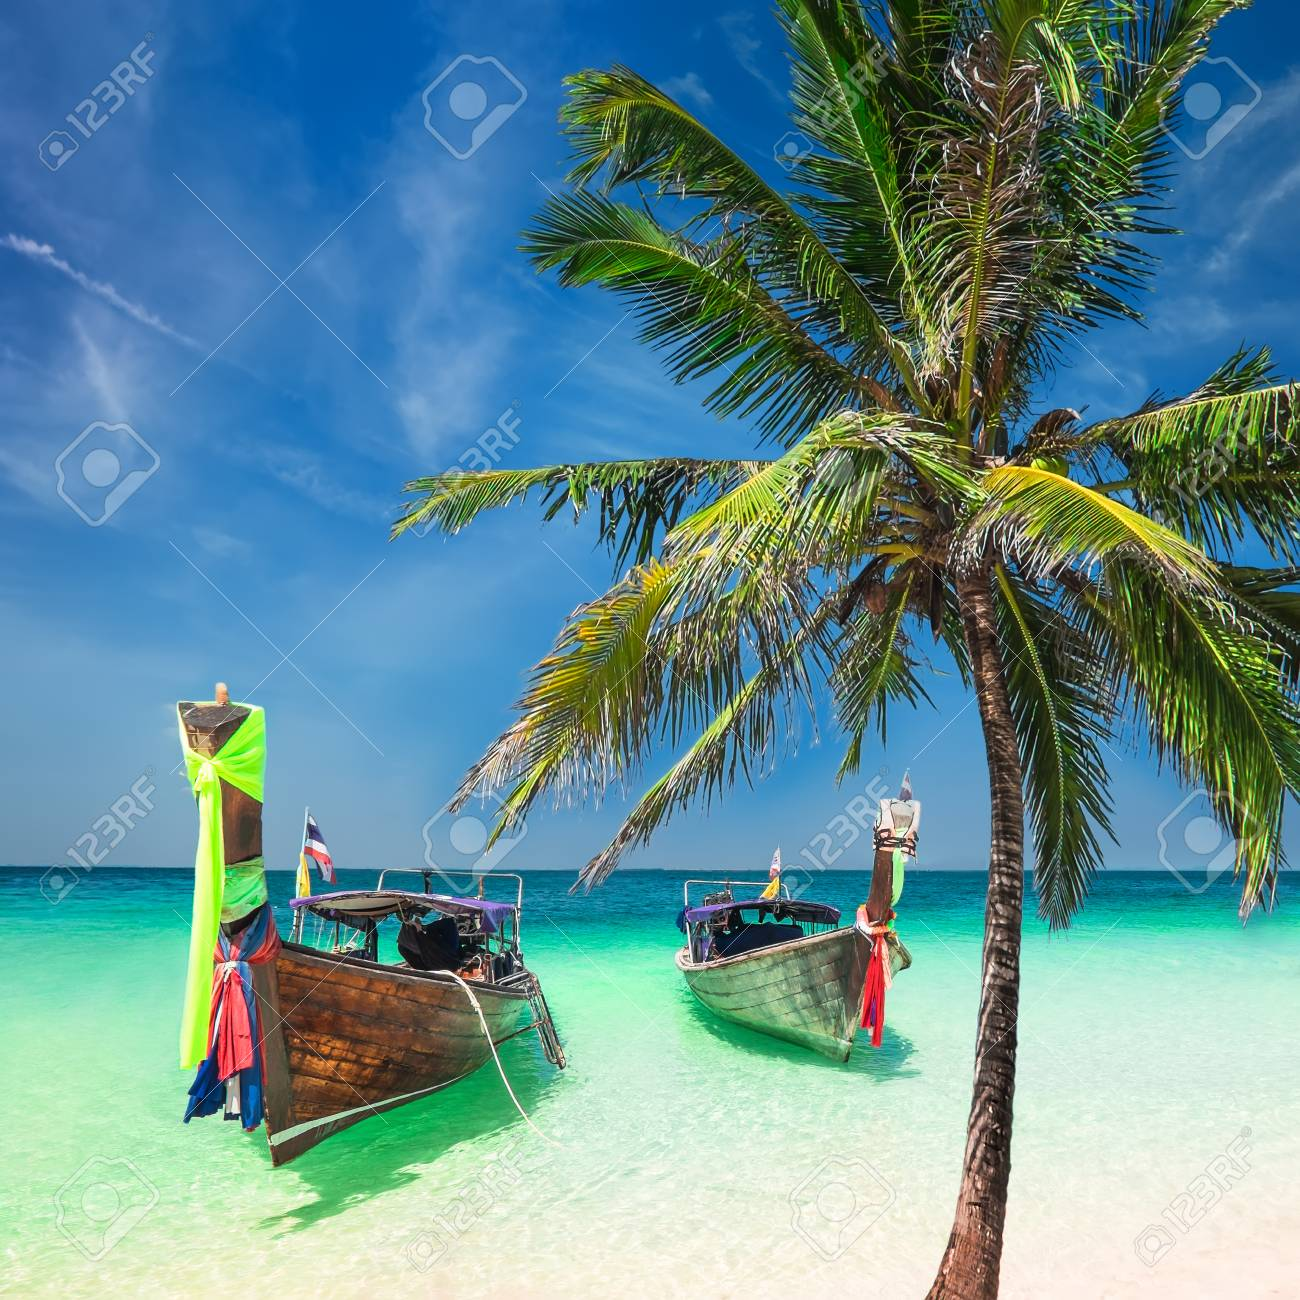 Amazing Tropical Landscape With Thai Traditional Wooden Boats And Palm Tree At Ocean Beach Under Blue